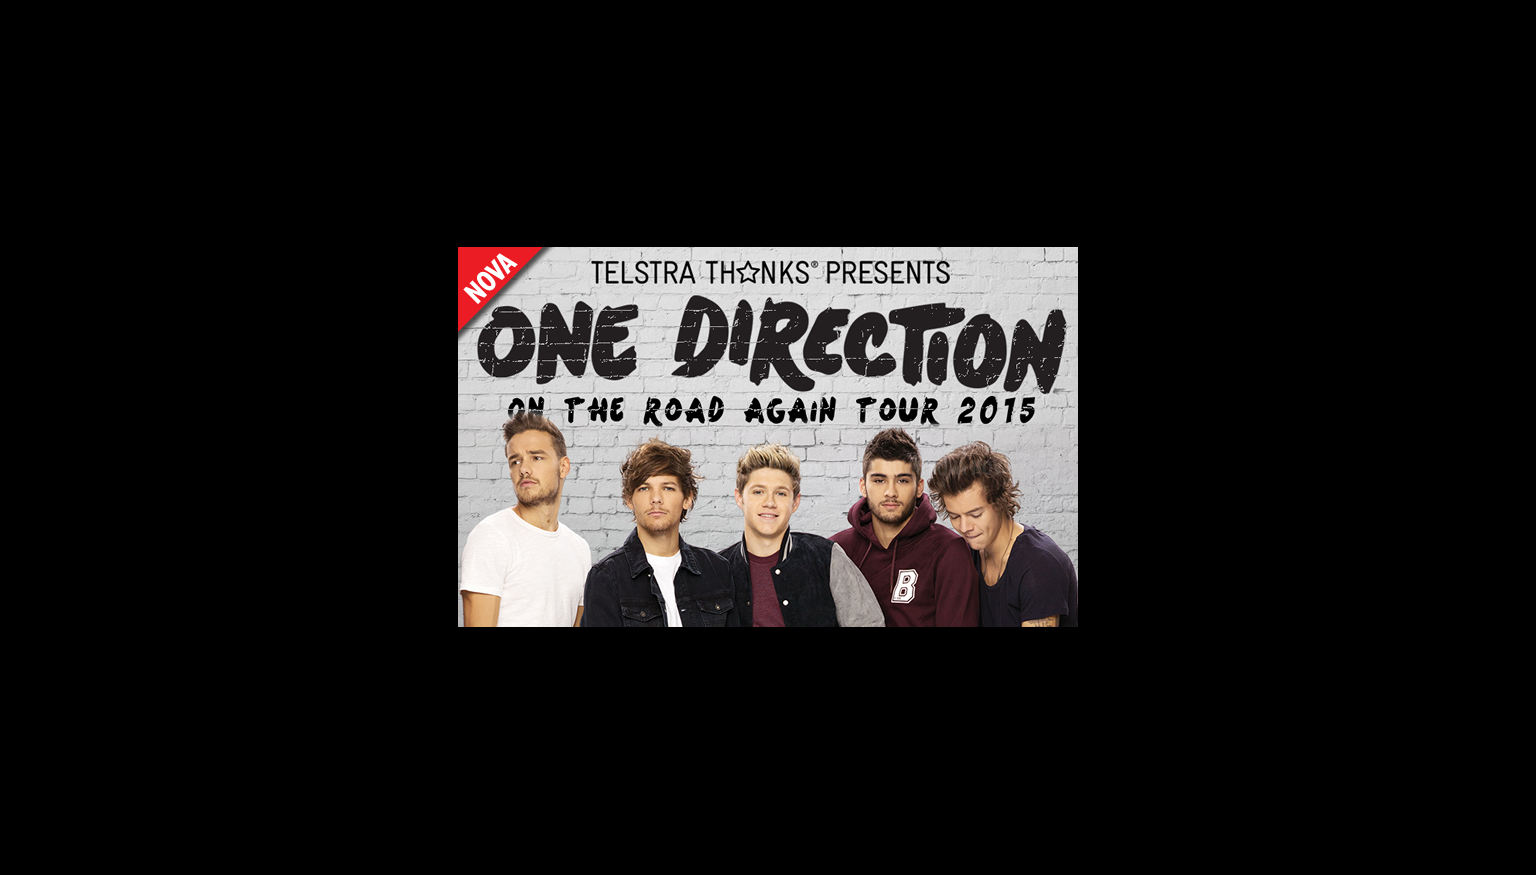 One direction 2015 tour dates